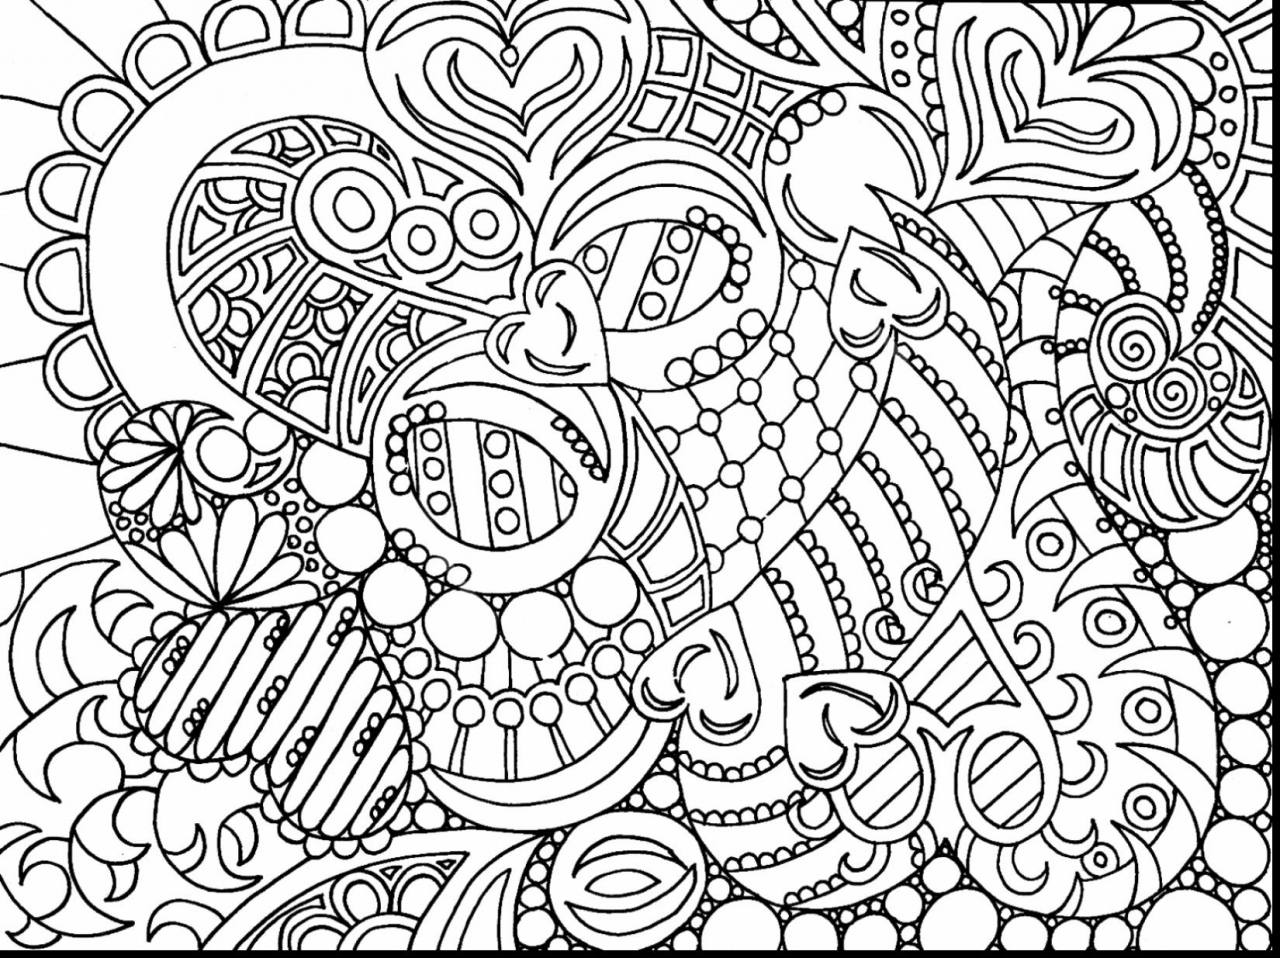 printable difficult coloring pages for adults 46271 - Difficult Coloring Pages